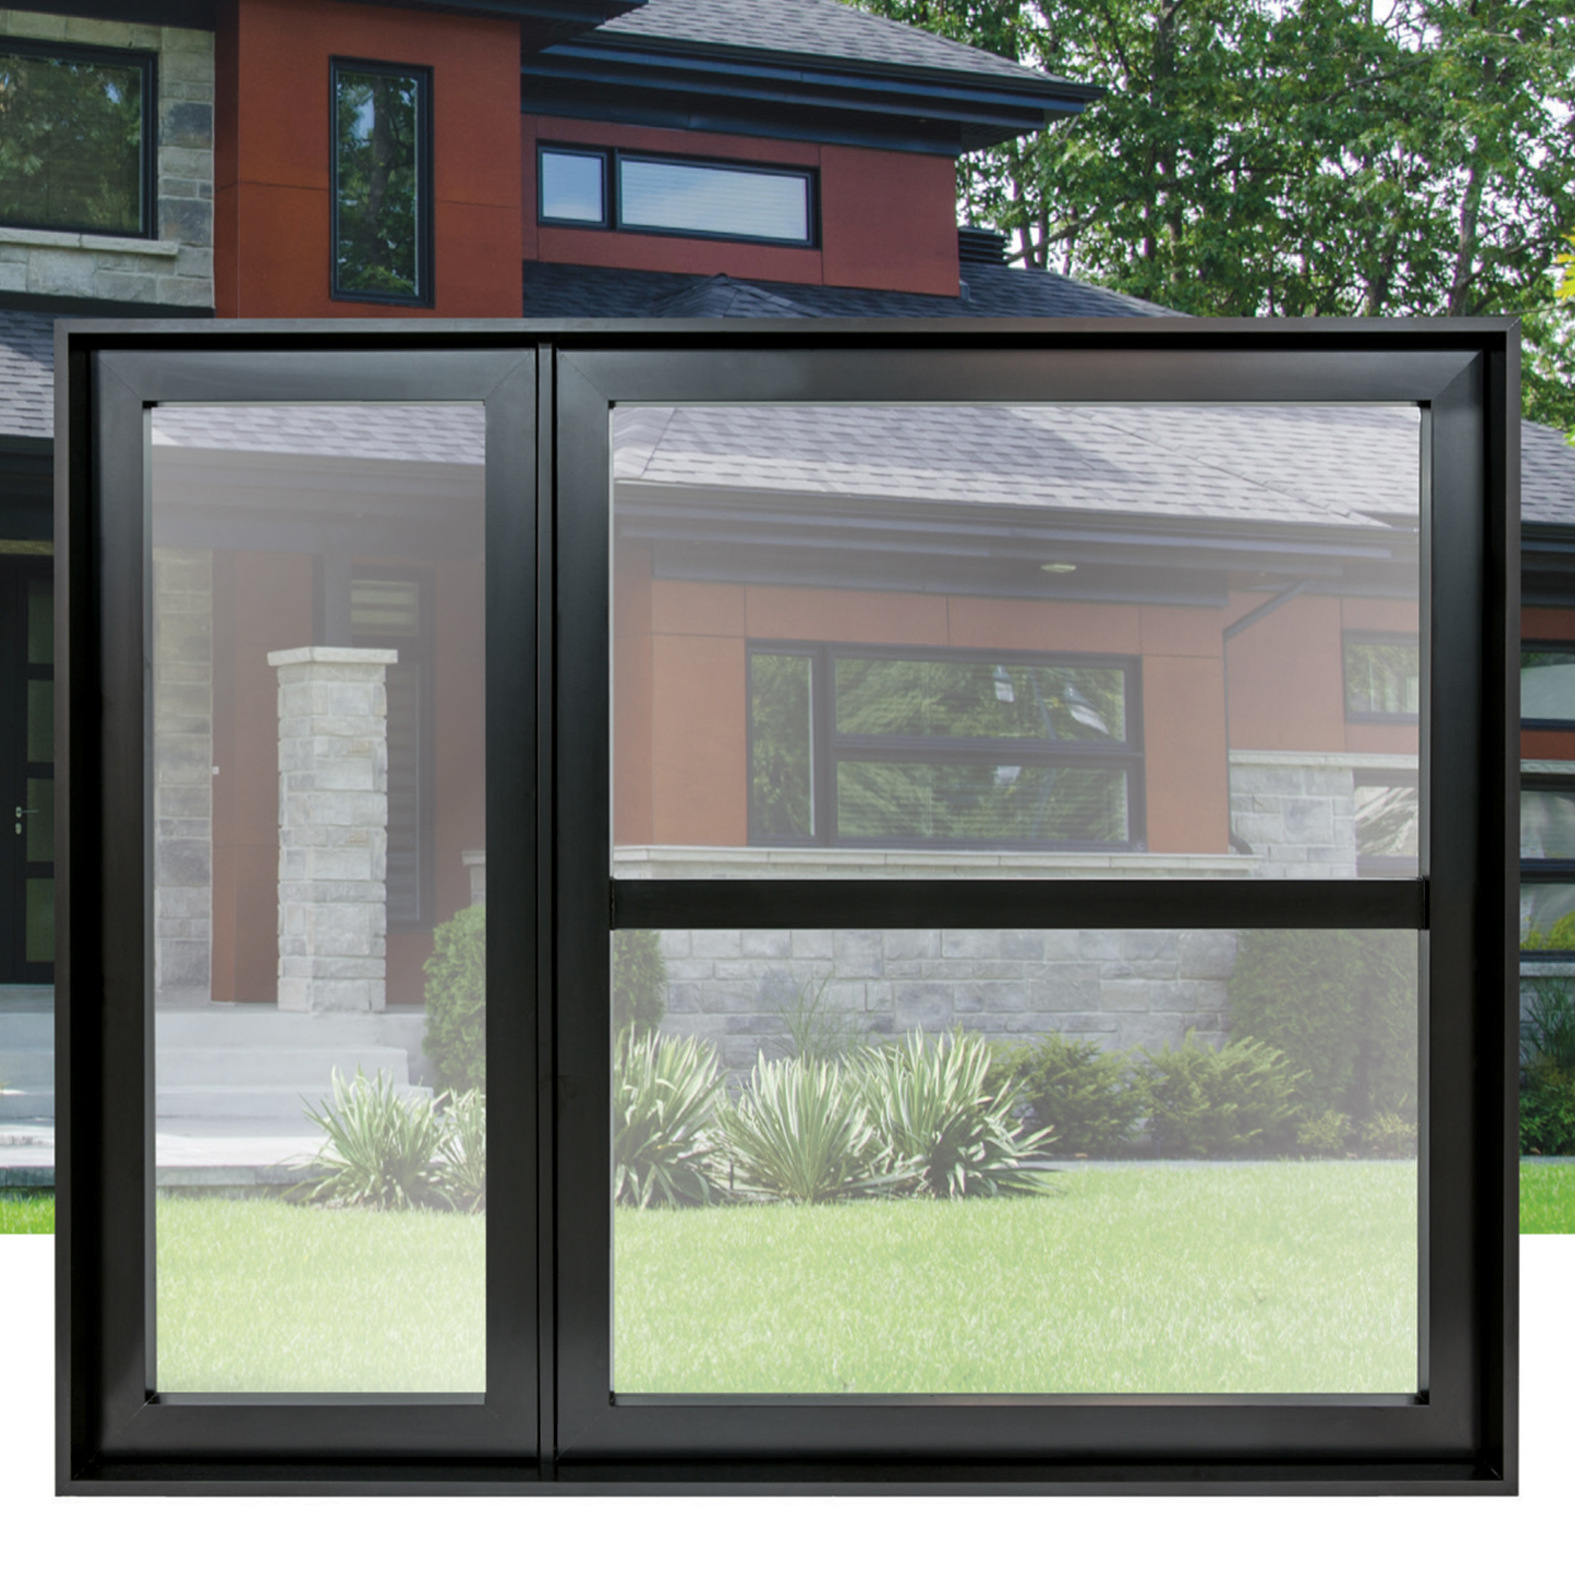 Triple Glazed Windows Advantages And Disadvantages